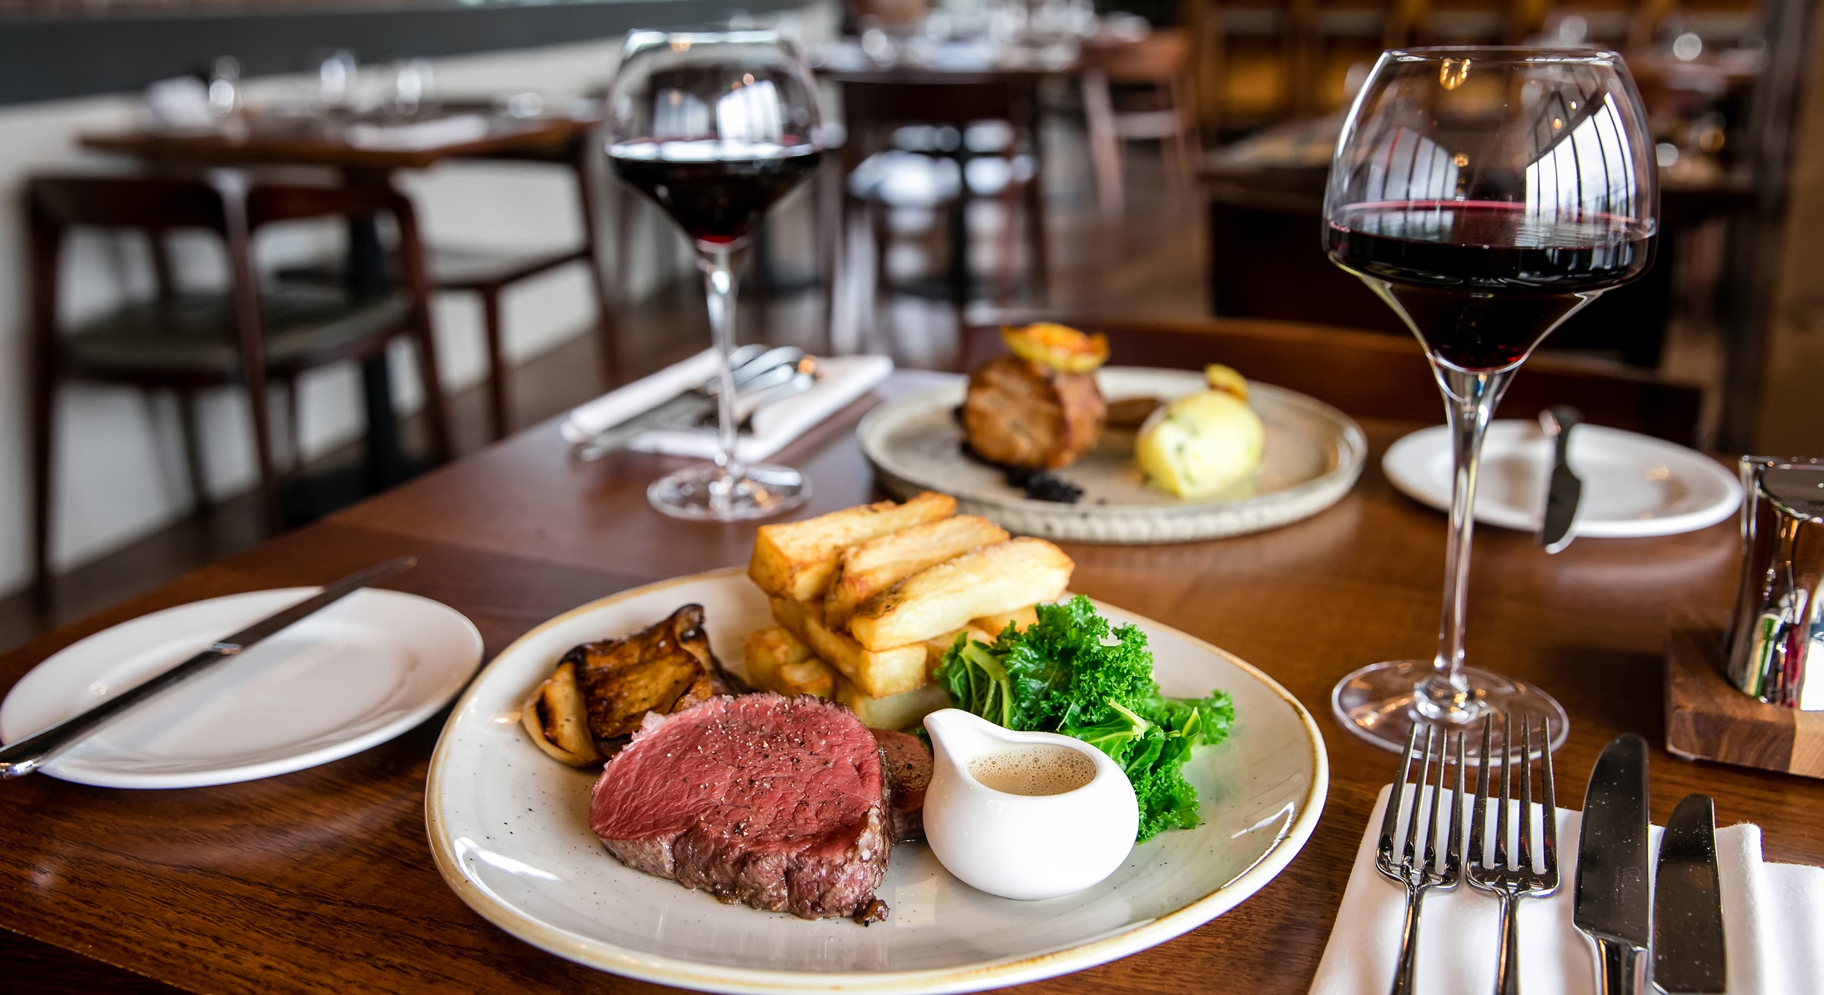 table laid with a plate of roast beef and two glasses if red wine